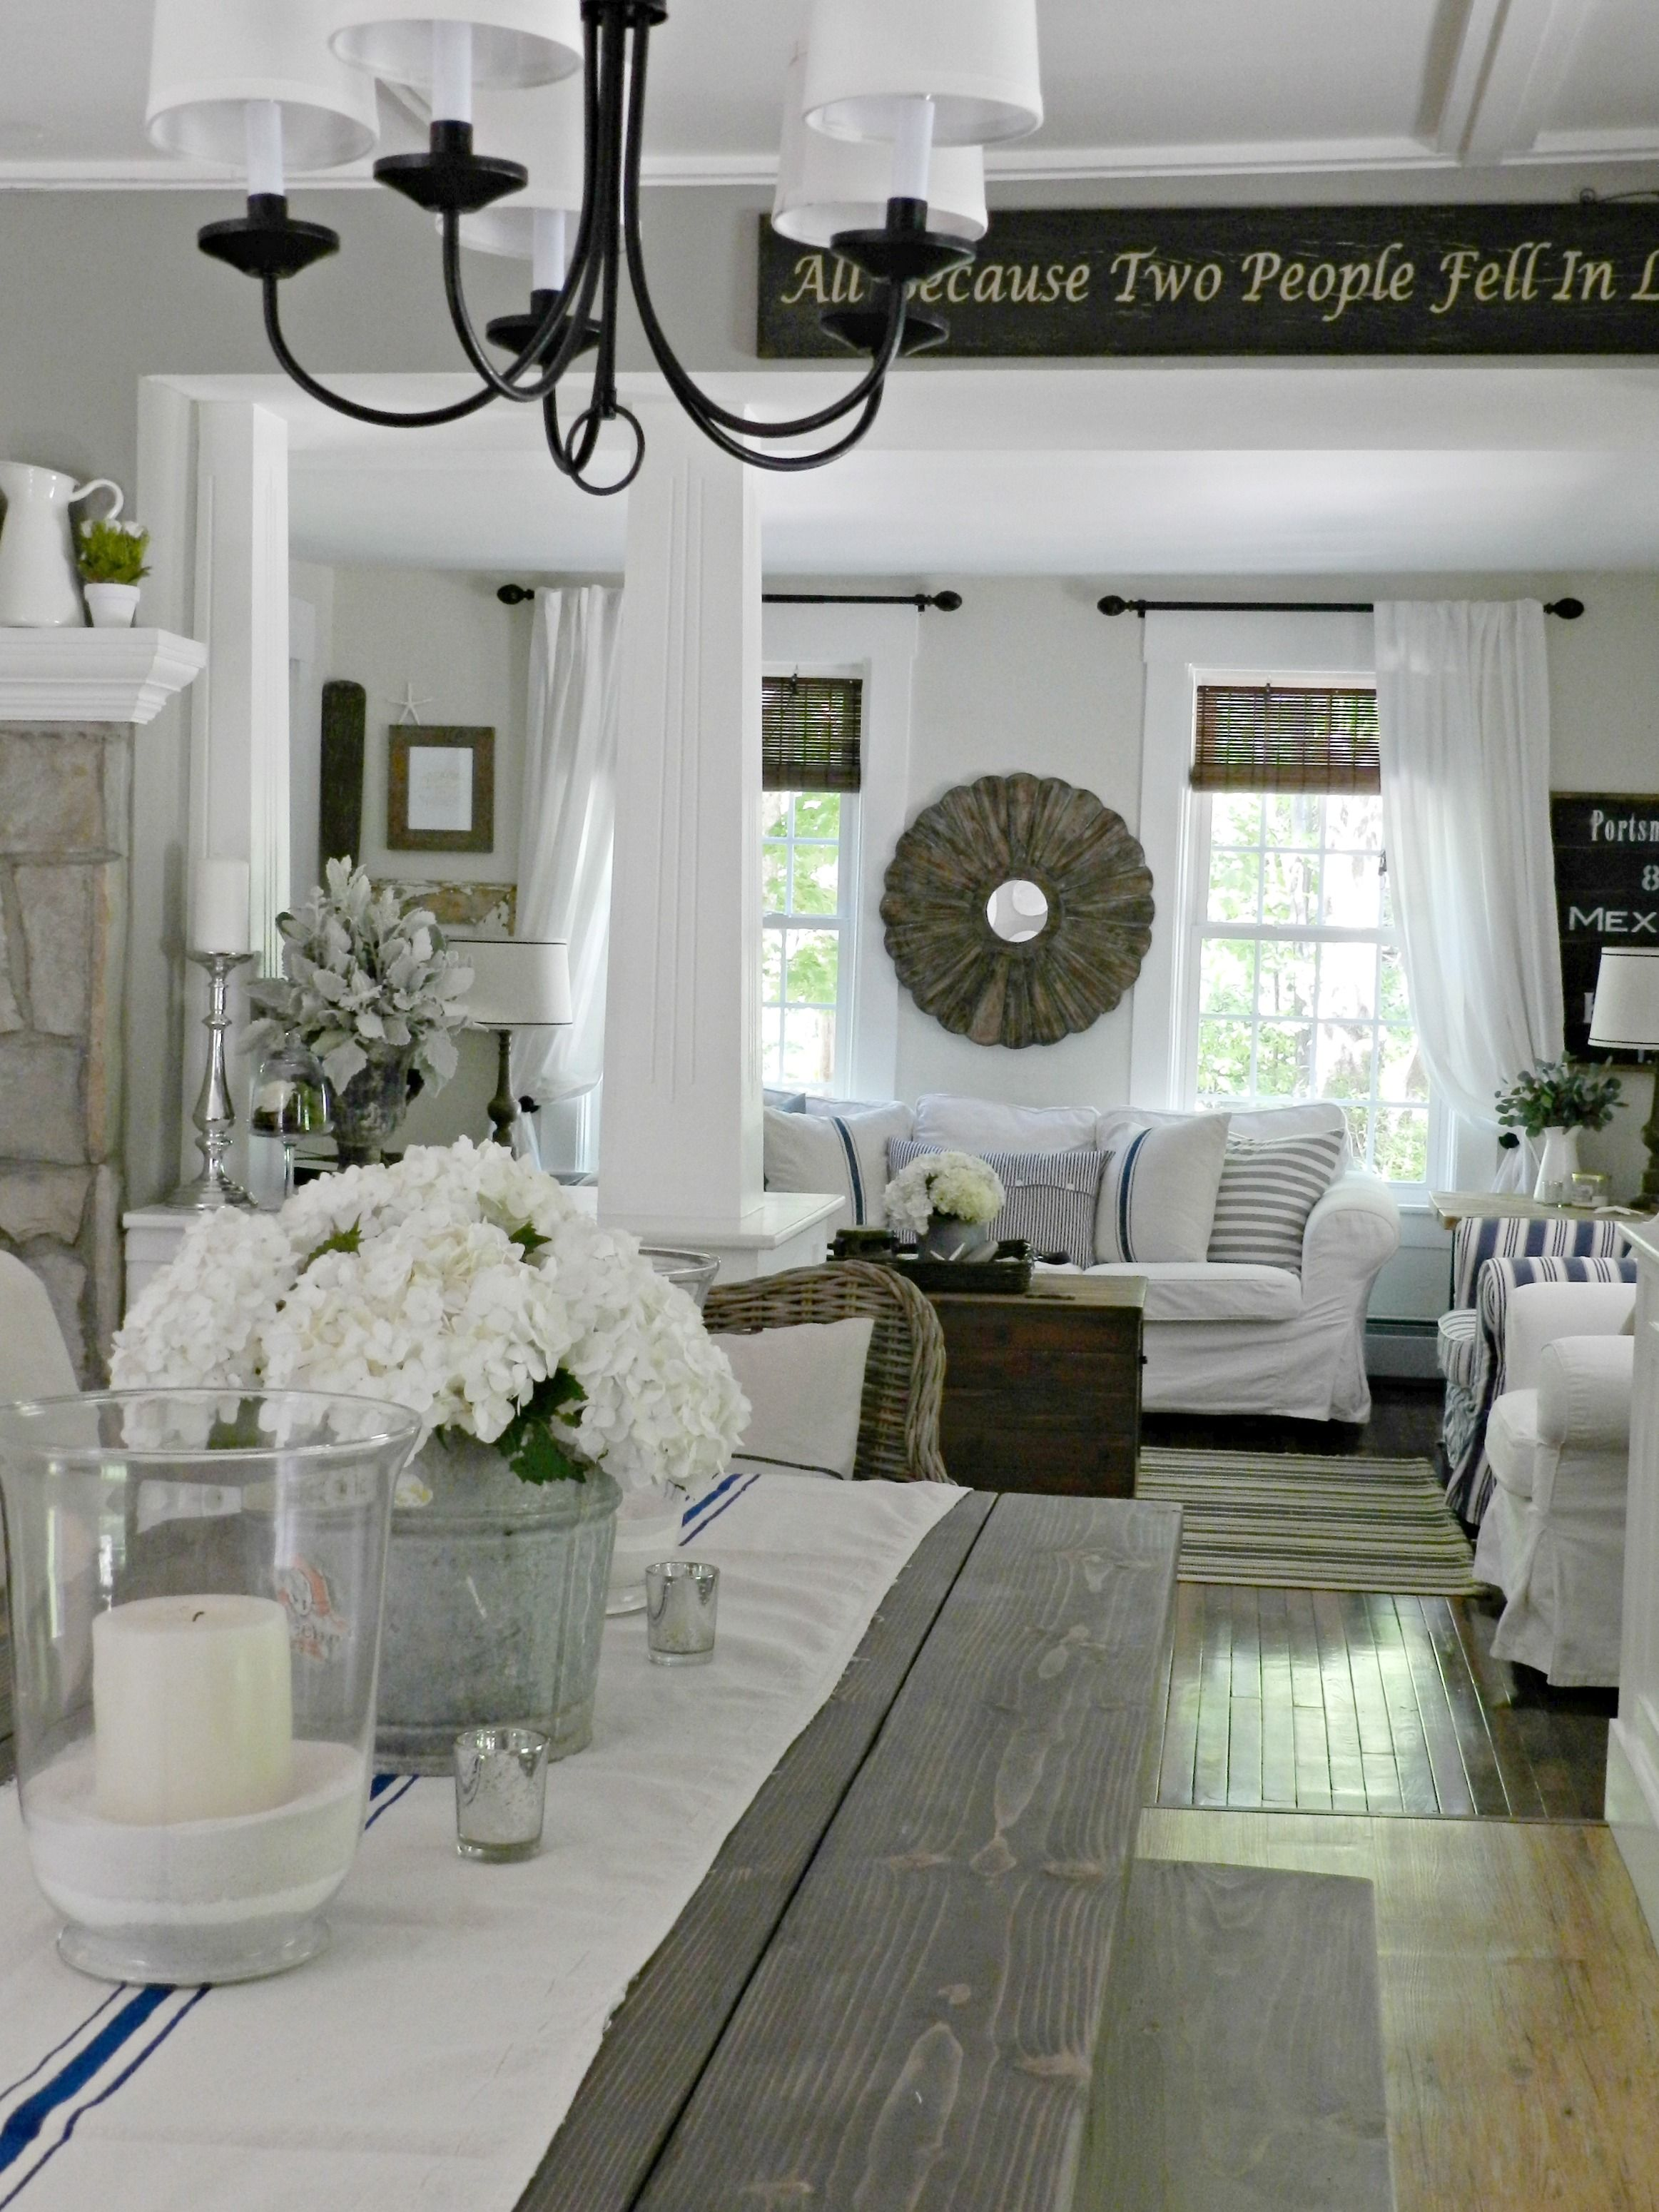 Cues On Country Farmhouse Style From Bre Doucette Plume Magazine Home Decor Diy And Inspiration Fro Farm House Living Room Rooms For Rent House Styles